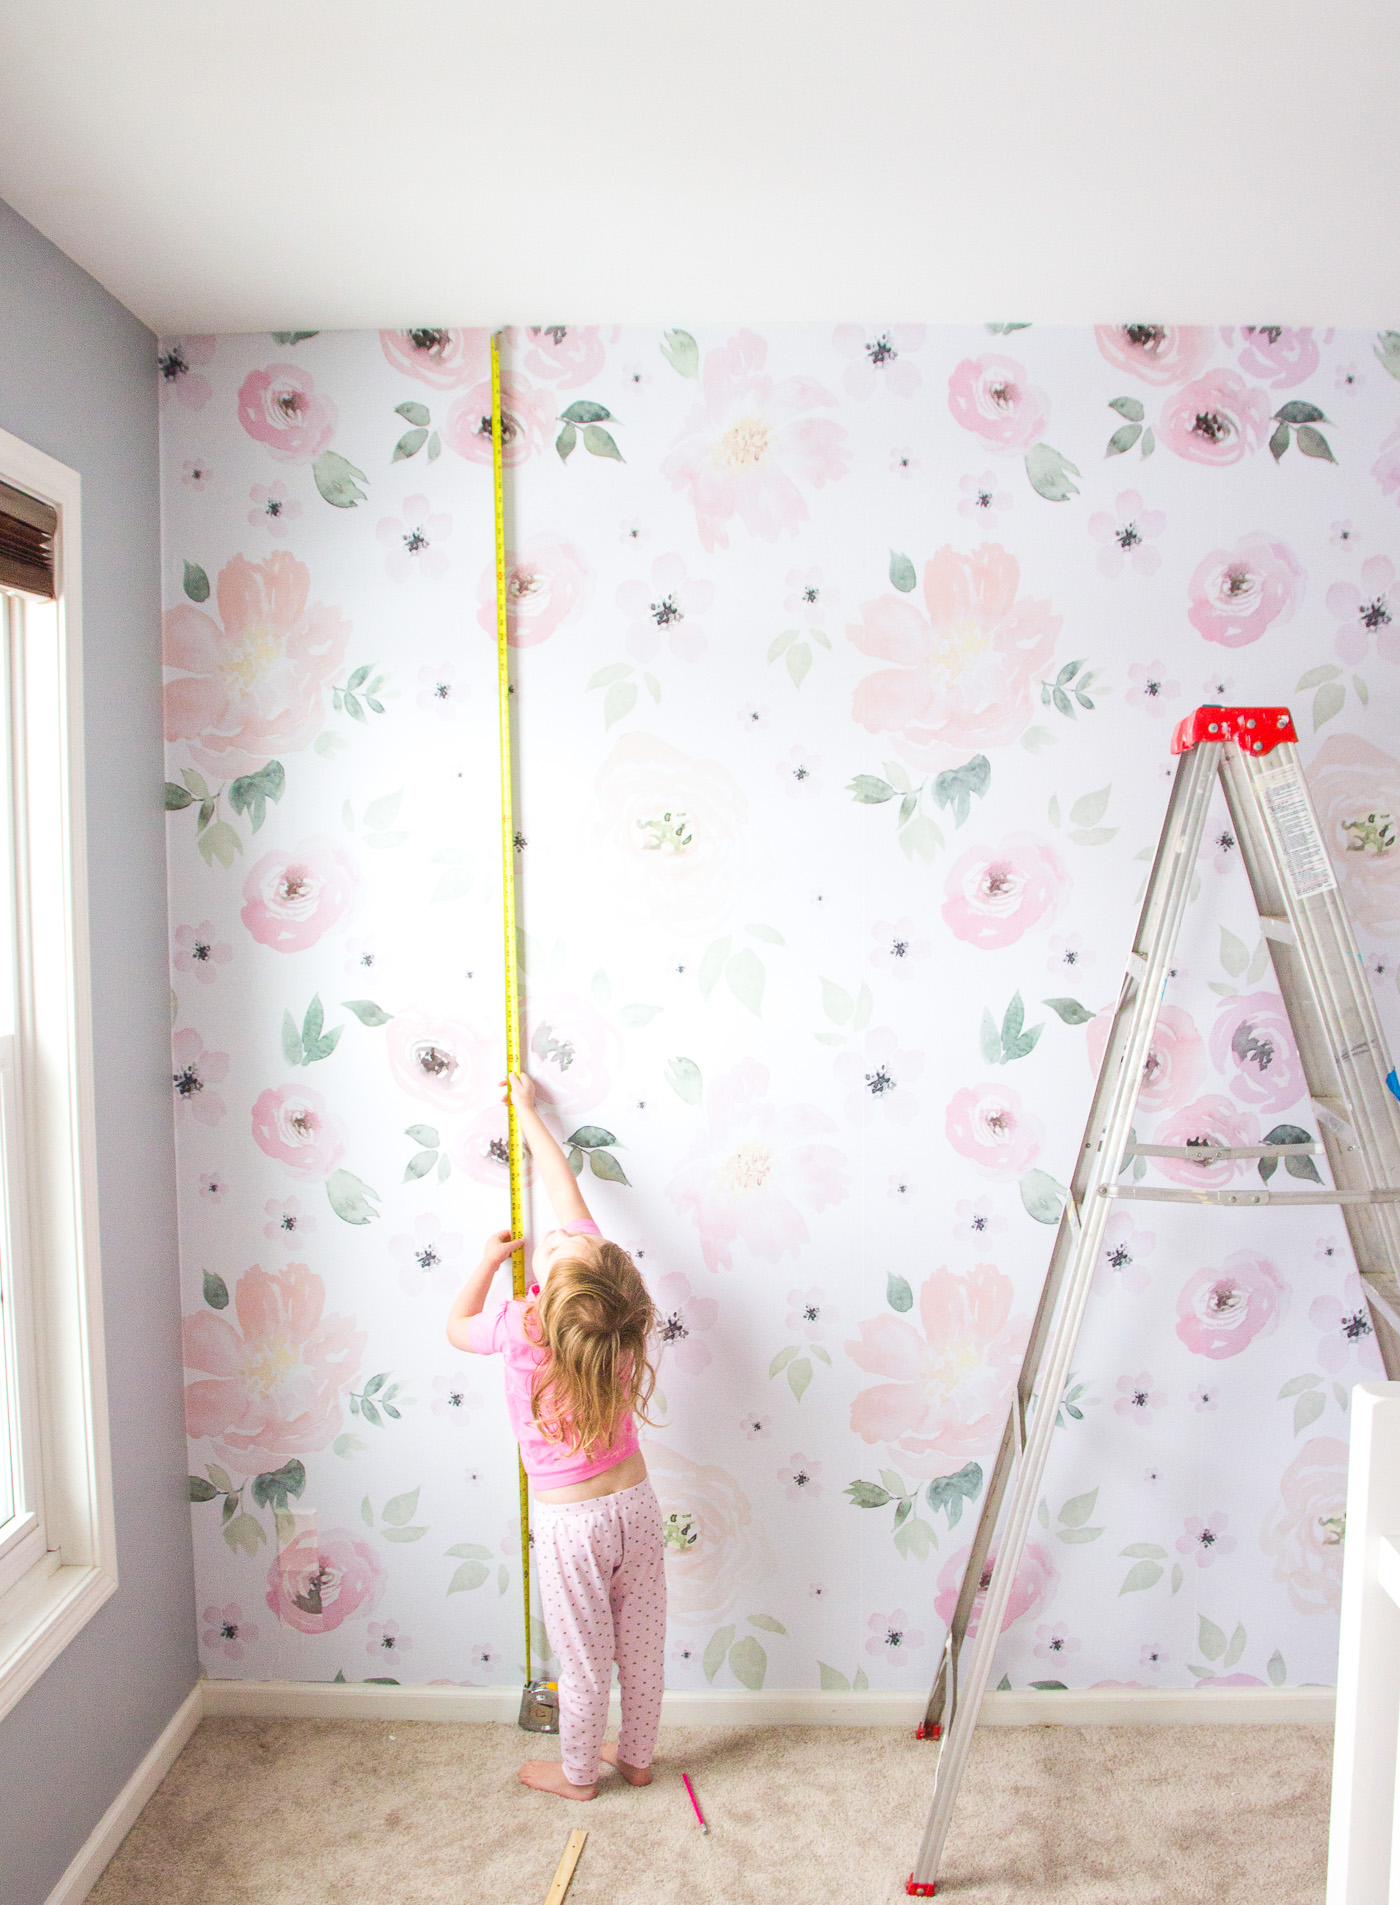 We Had Planned To Paint The Nursery In Case You Remember This Post But After Installing Wallpaper Are Keeping Color As Is